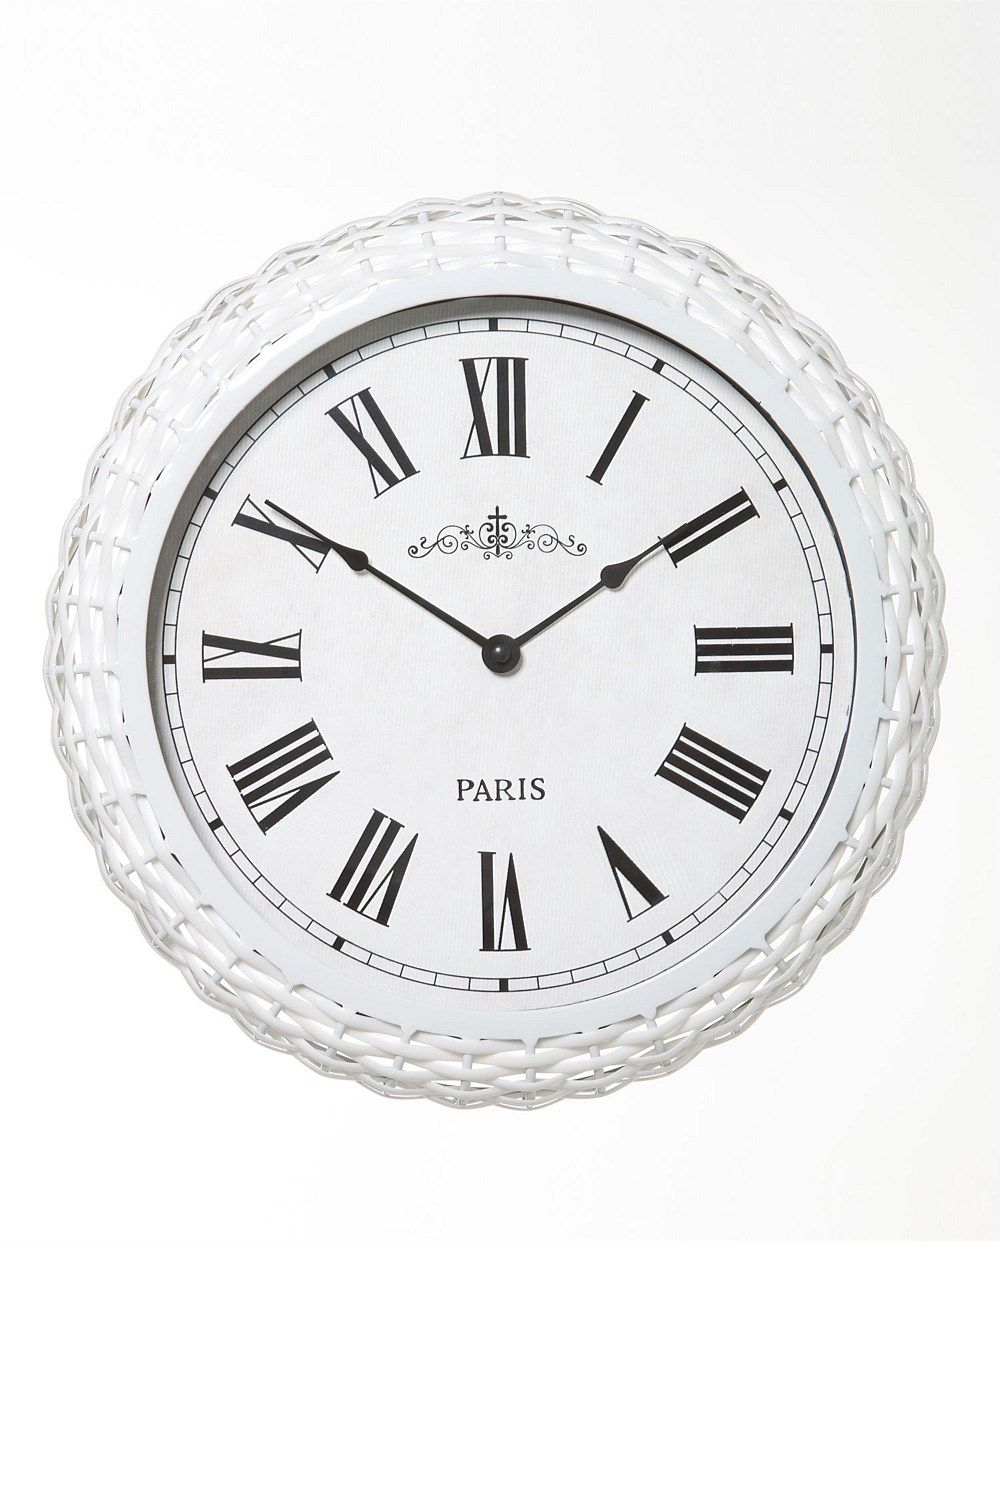 Picture Frames Australia Picture Frames And Wall Art Wicker Wall Clock Ezibuy Australia